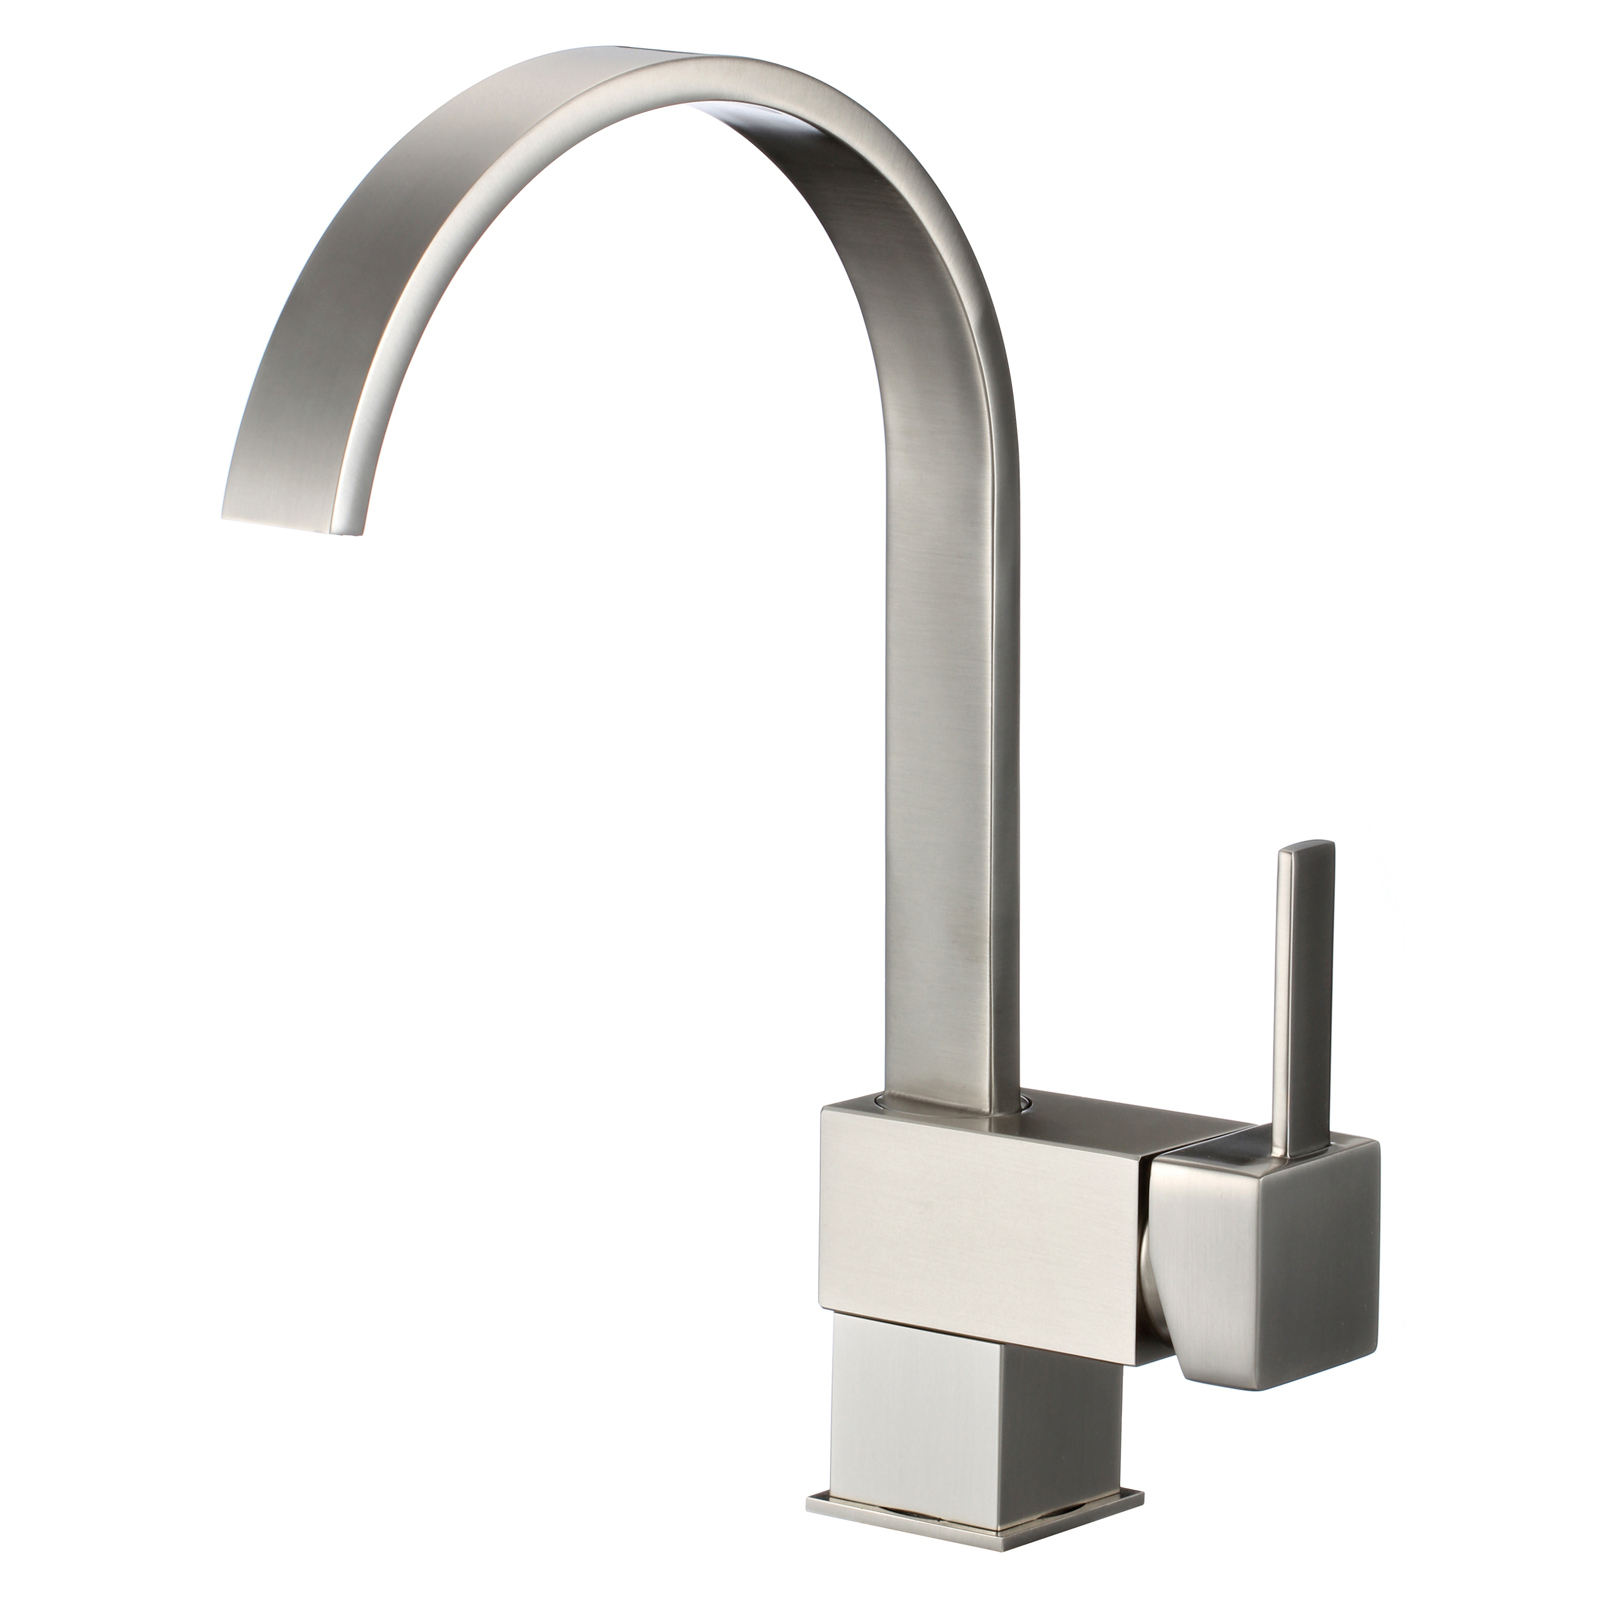 kitchen and bathroom faucets 13 quot modern kitchen bathroom sink faucet one hole handle ebay 2644